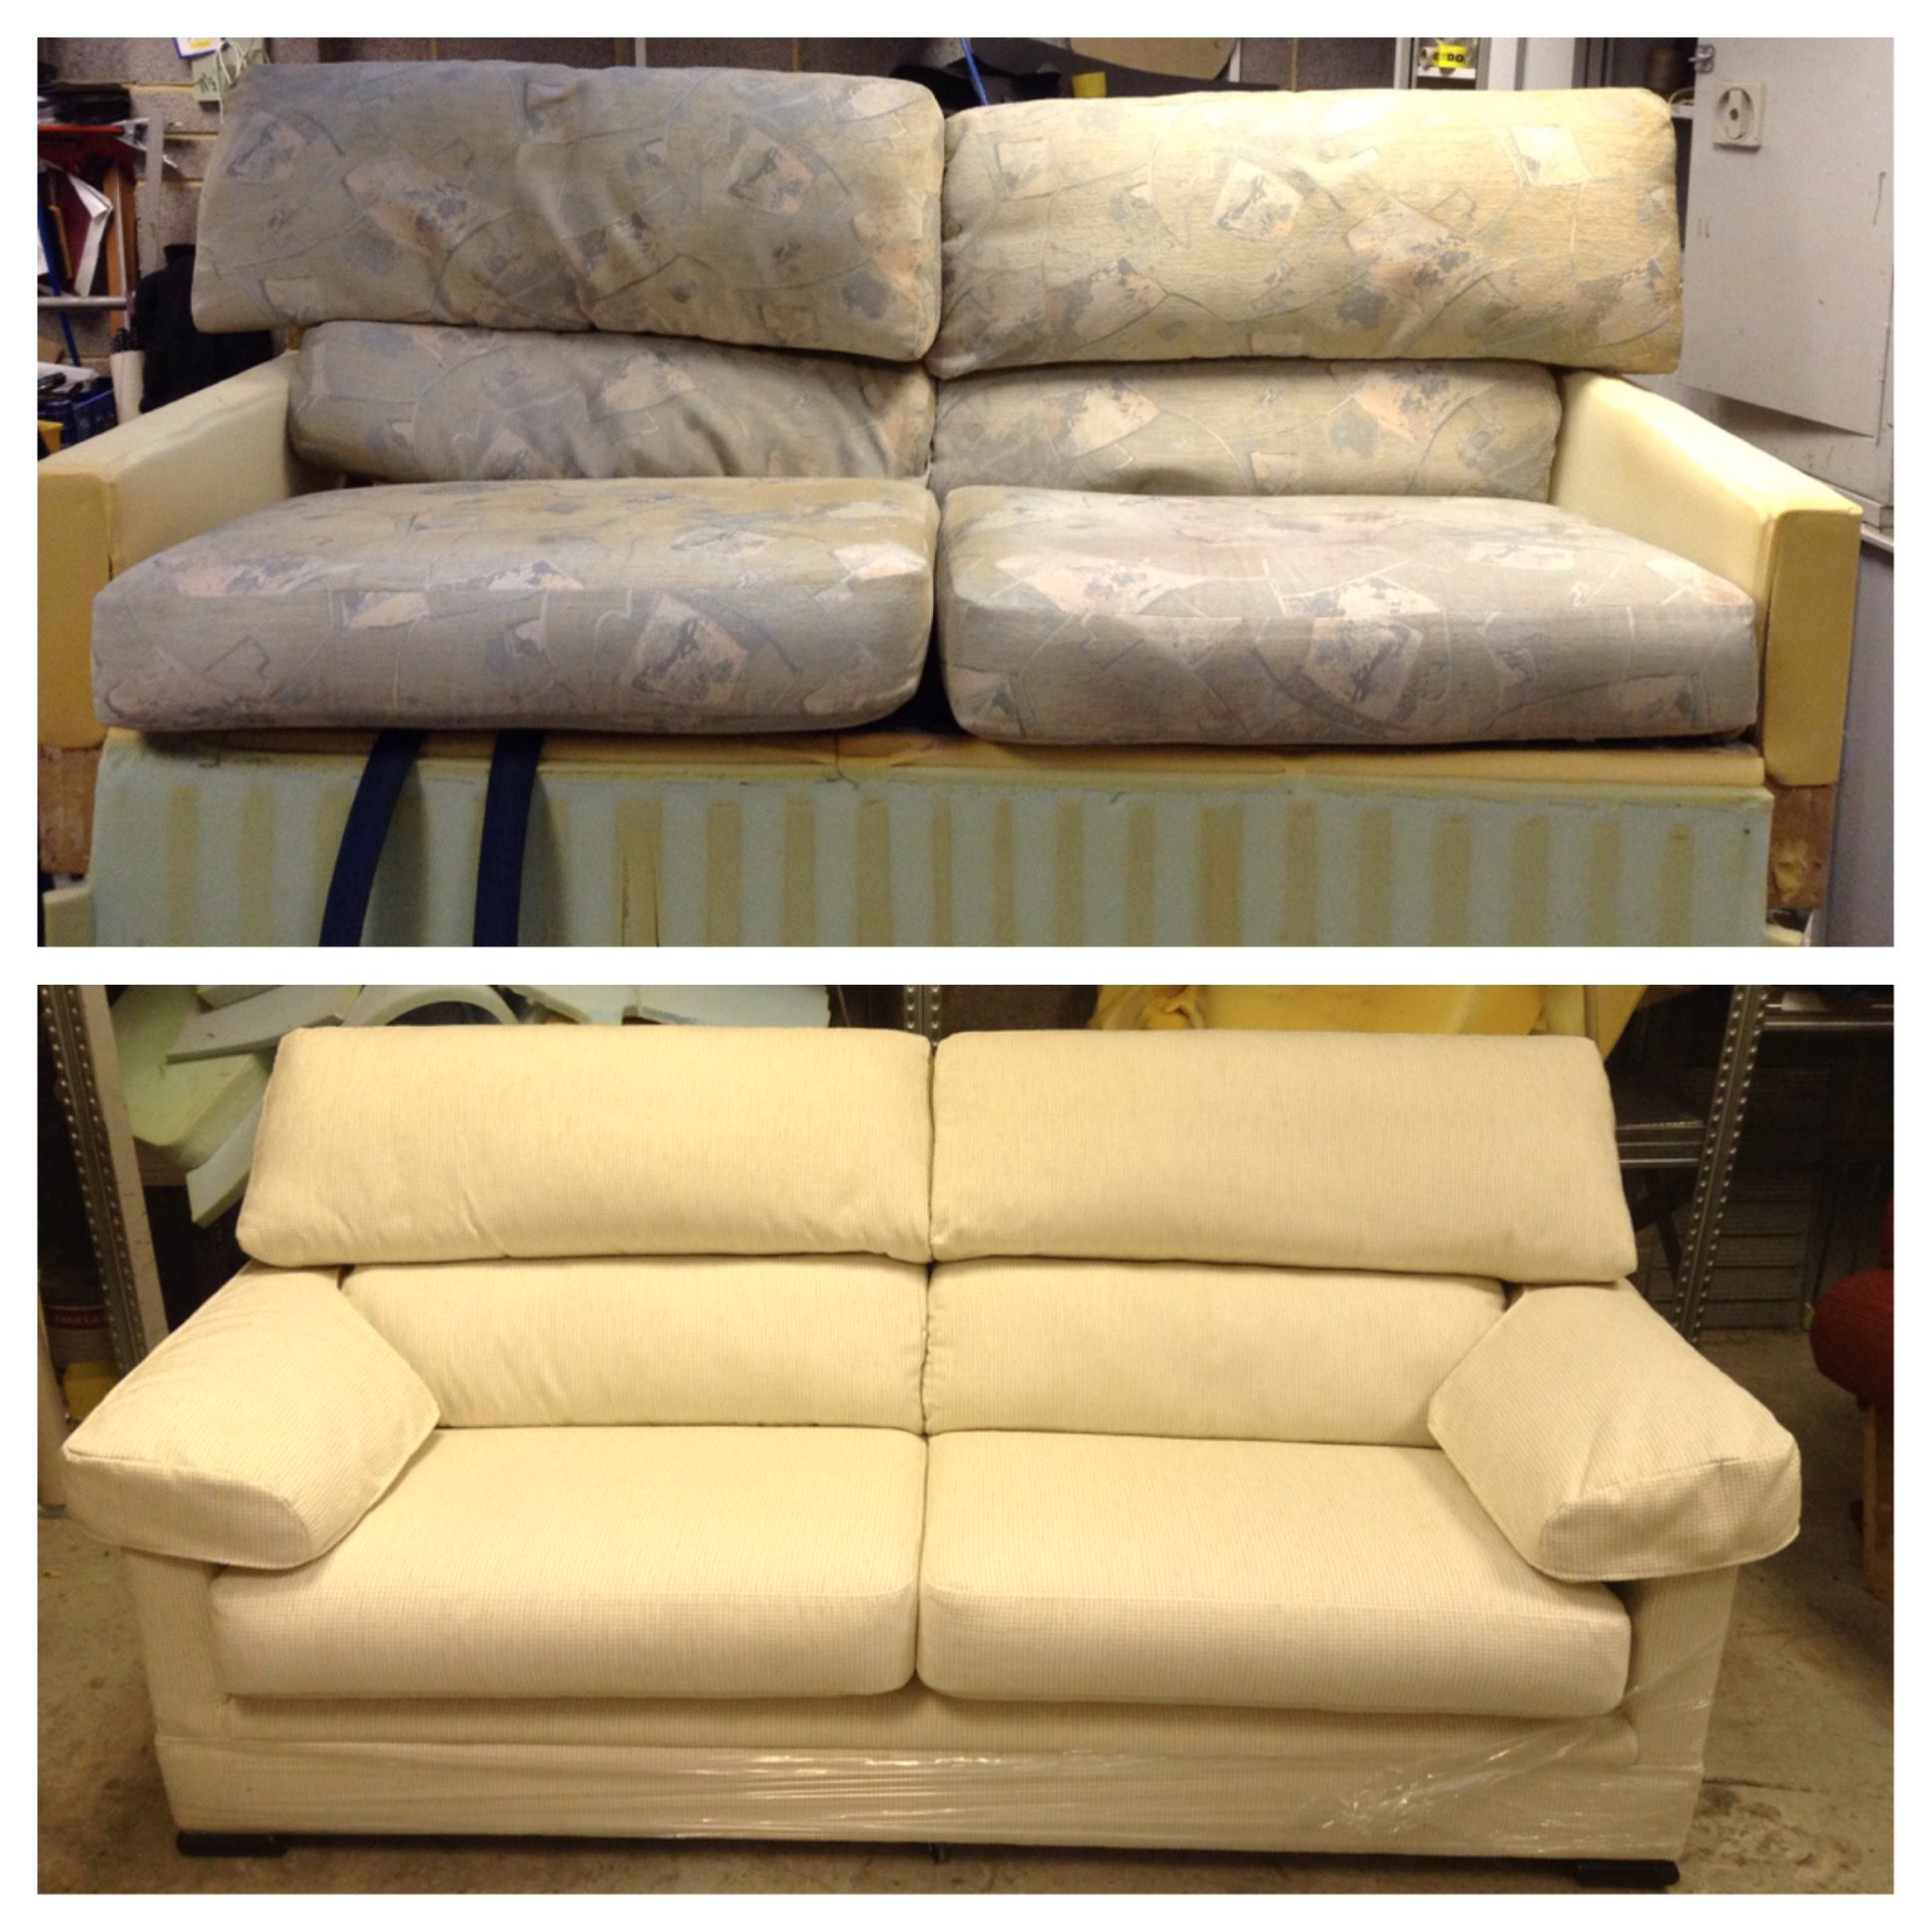 Ordinaire Do You Have An Old Sofa That Needs Modernising Like This One? Why Not Give  Us A Call On 0117 370 2745 To See If We Can Help!